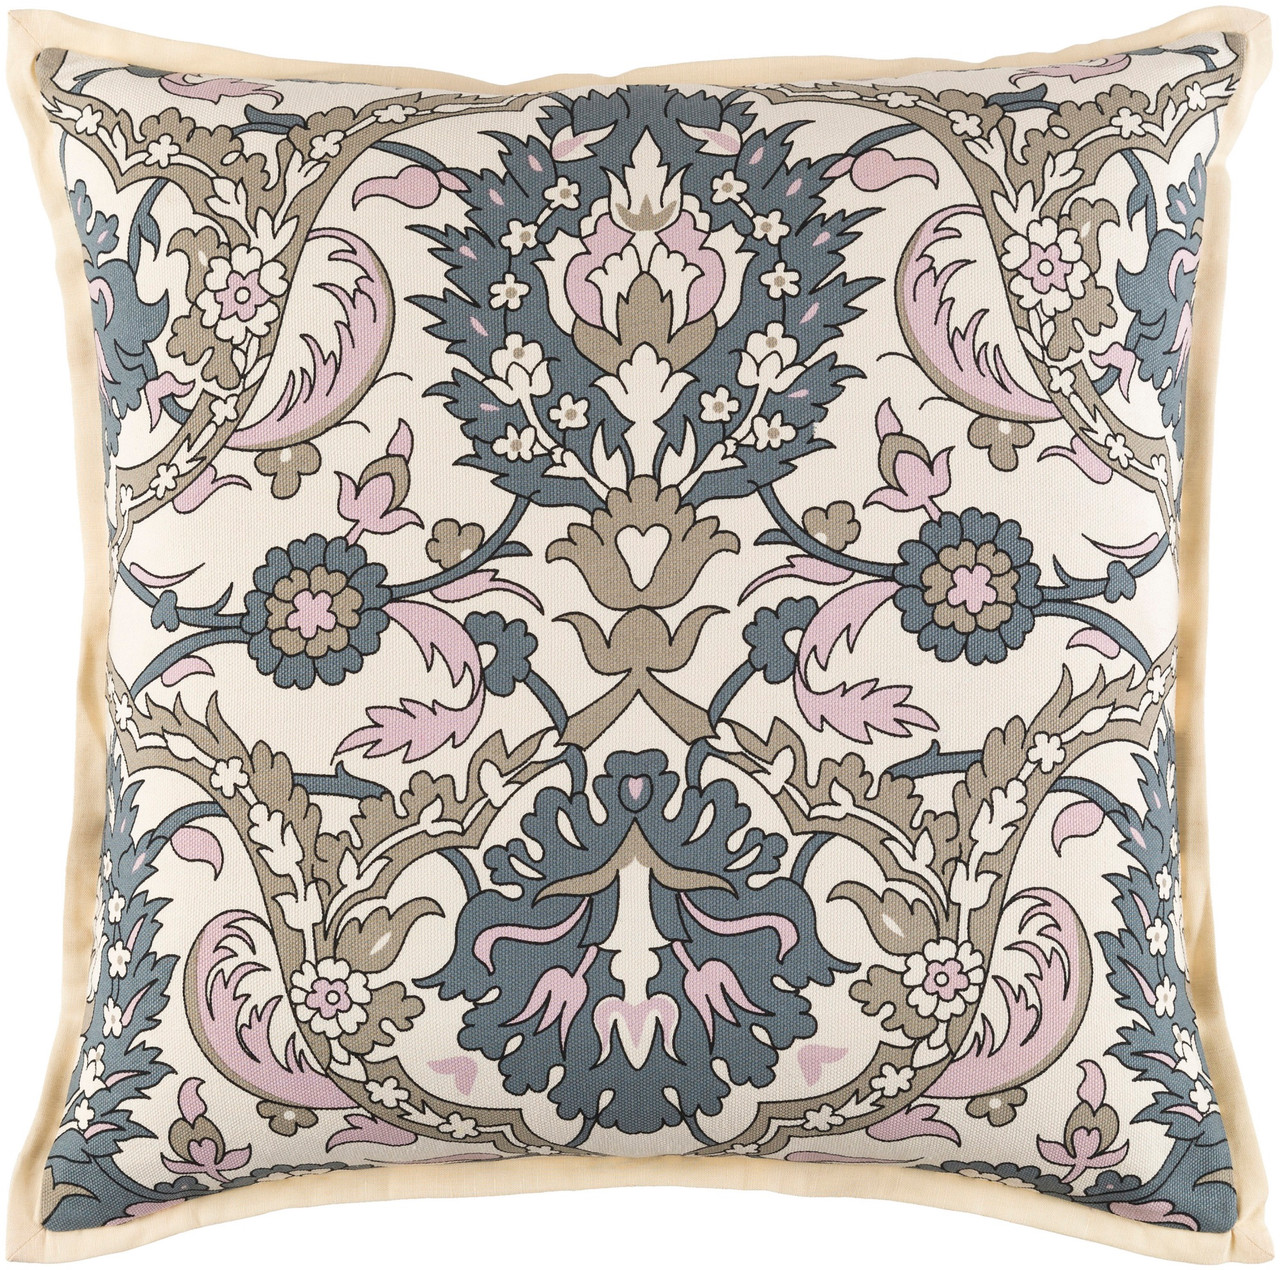 Blue And Pink Decorative Pillows : 18? Blush Pink, Blue Gray, Olive Green & Beige Woven Decorative Throw Pillow Christmas Central